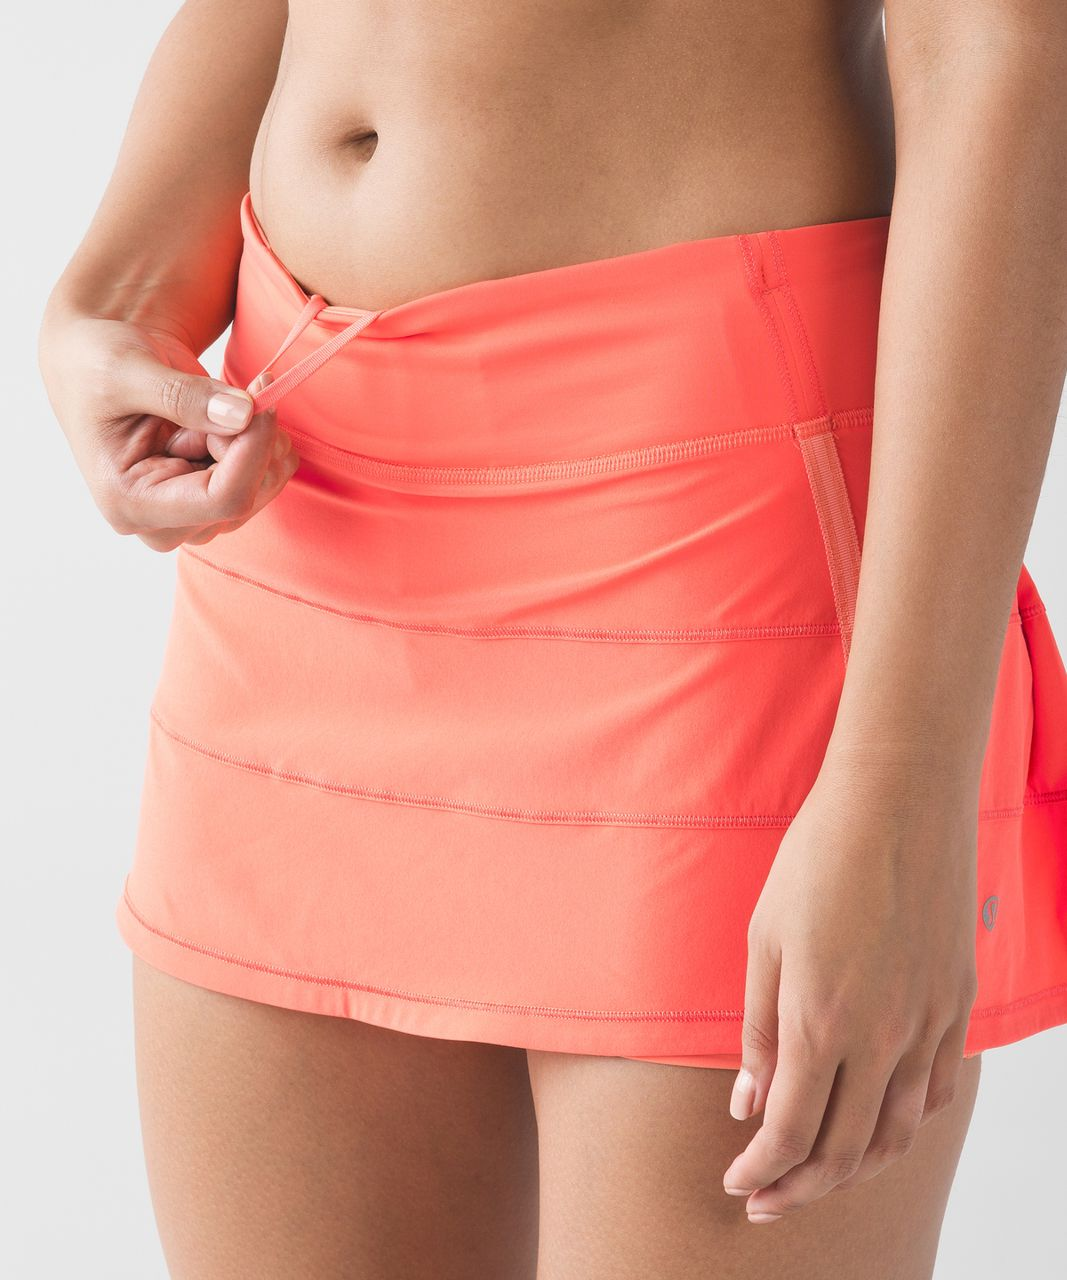 Lululemon Pace Rival Skirt II (Regular) (4-way Stretch) - Cape Red